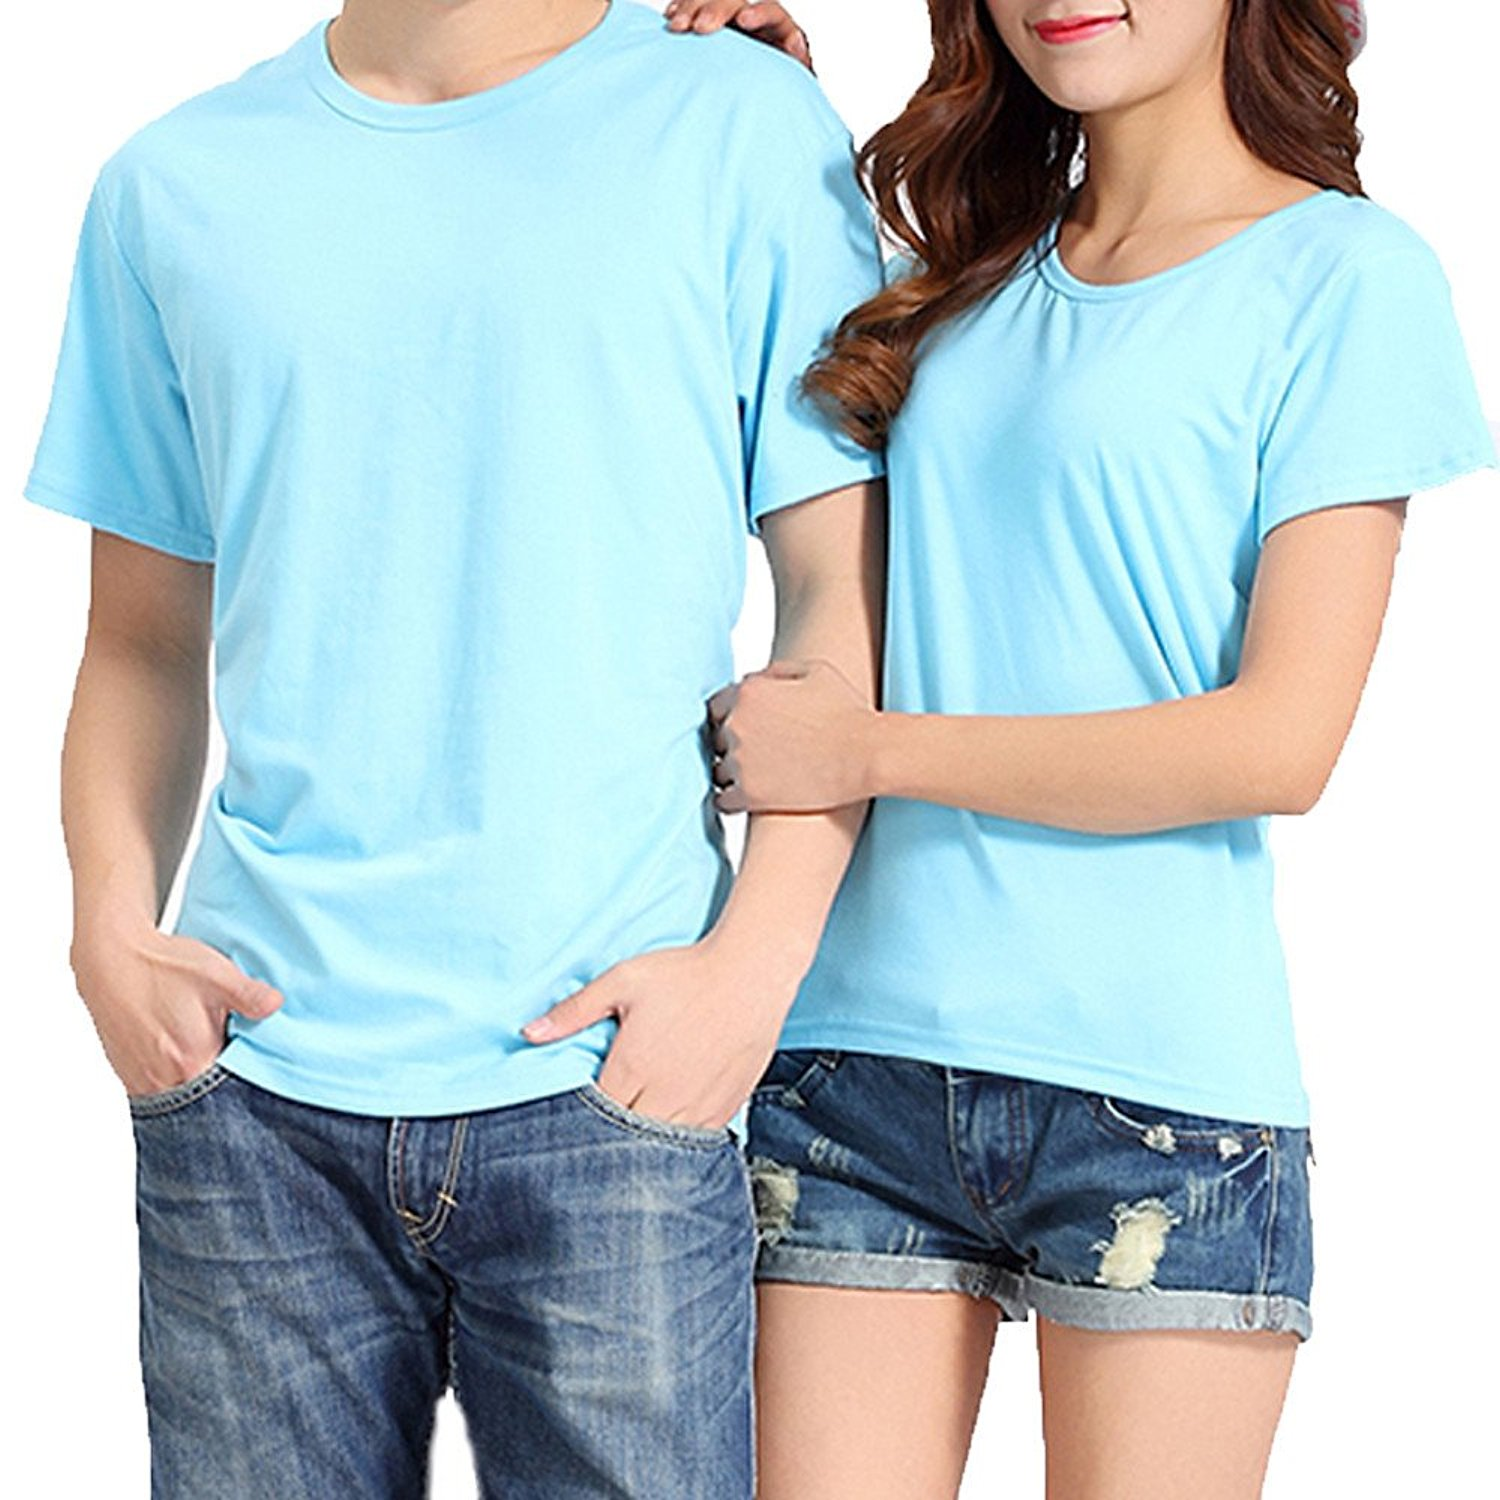 c3c68b90 Get Quotations · Jinjin Hot Sales!Womens Blouse, Matching Couple T Shirts  Blouse Summer Pure T-